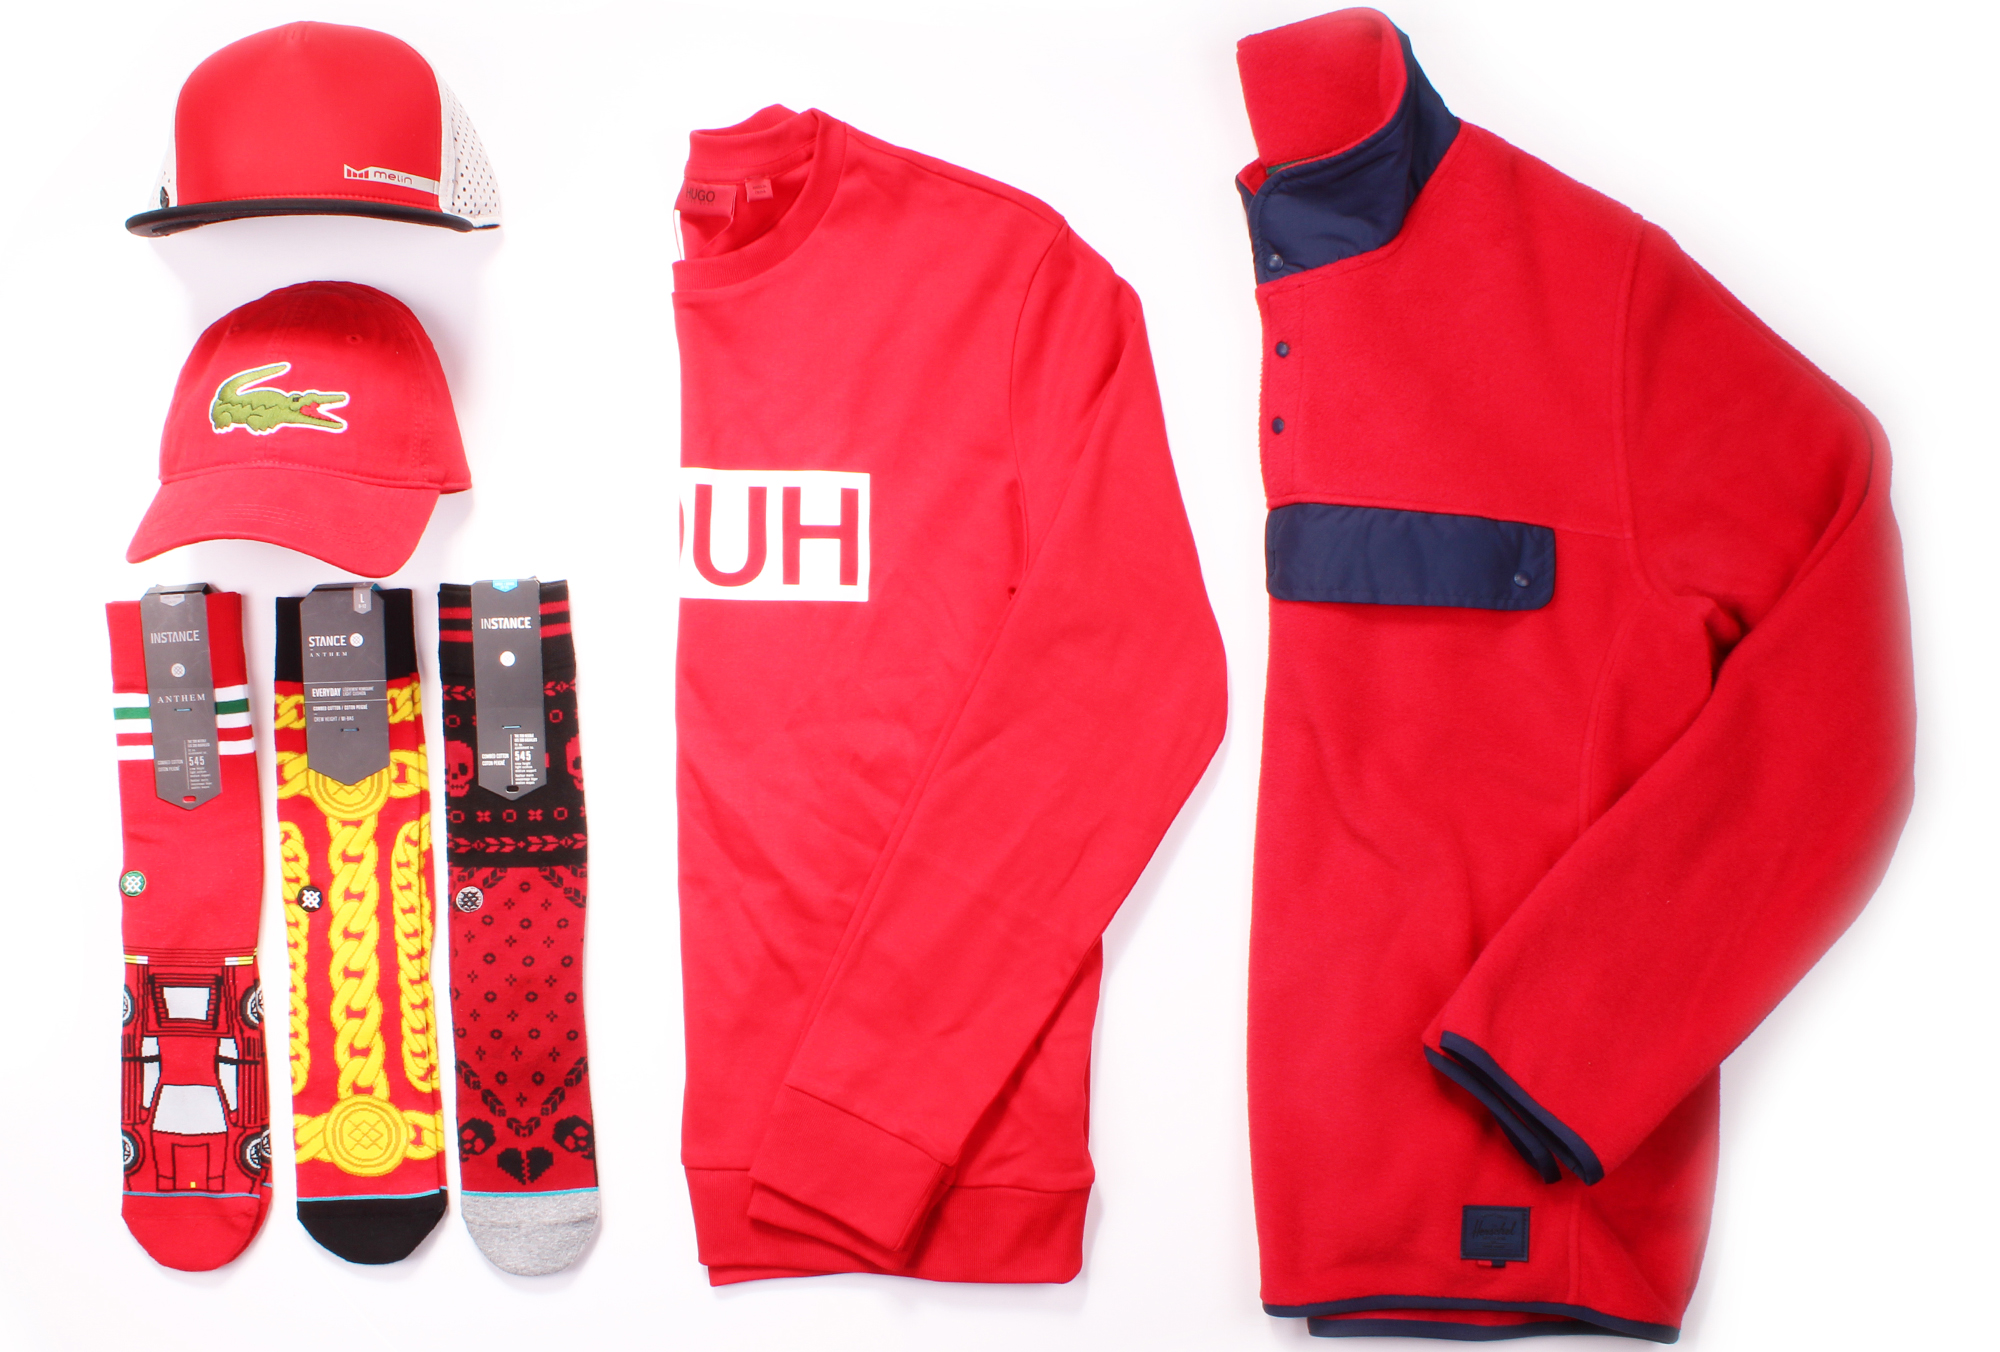 Red Hot Items from HUGO, Herschel Supply, Lacoste, Stance, and Melin available now at Boys'Co